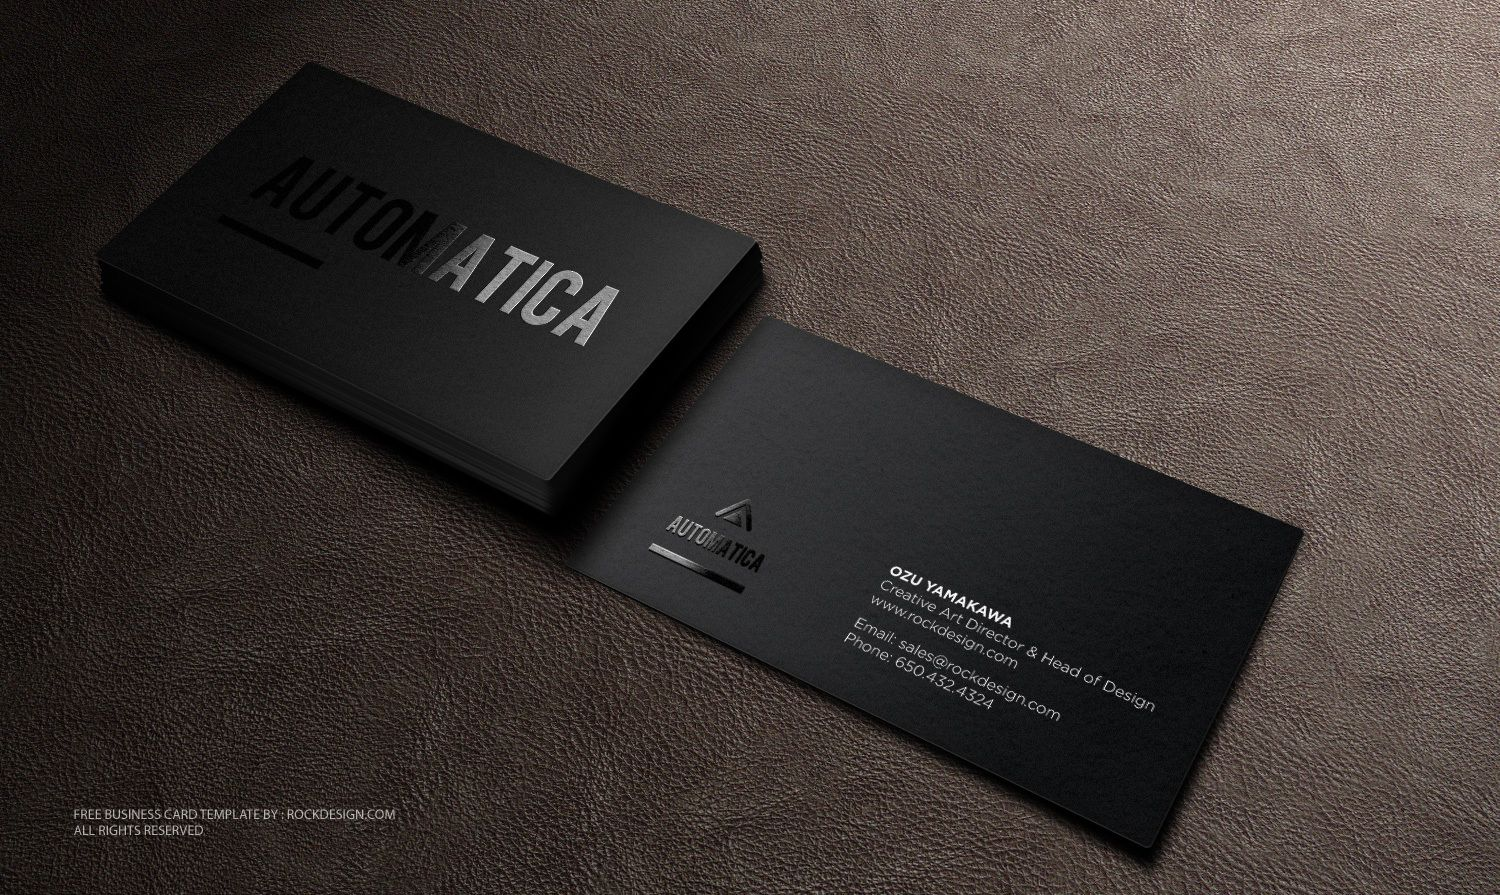 Black business card template download free design templates black business card template download free design templates reheart